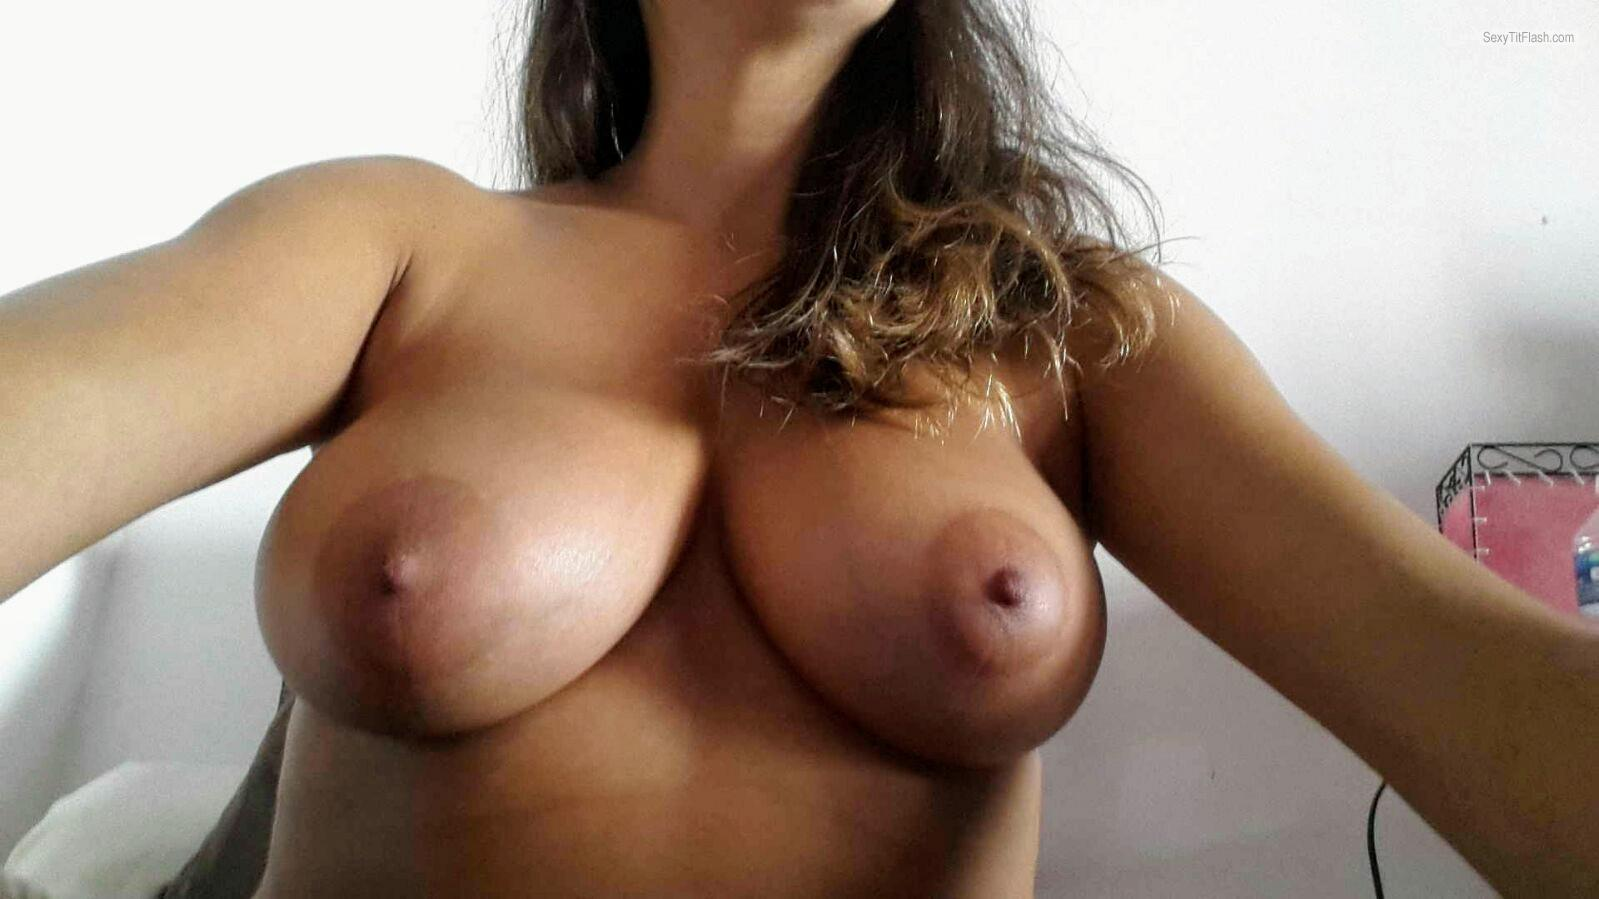 My Big Tits Selfie by Big Tits